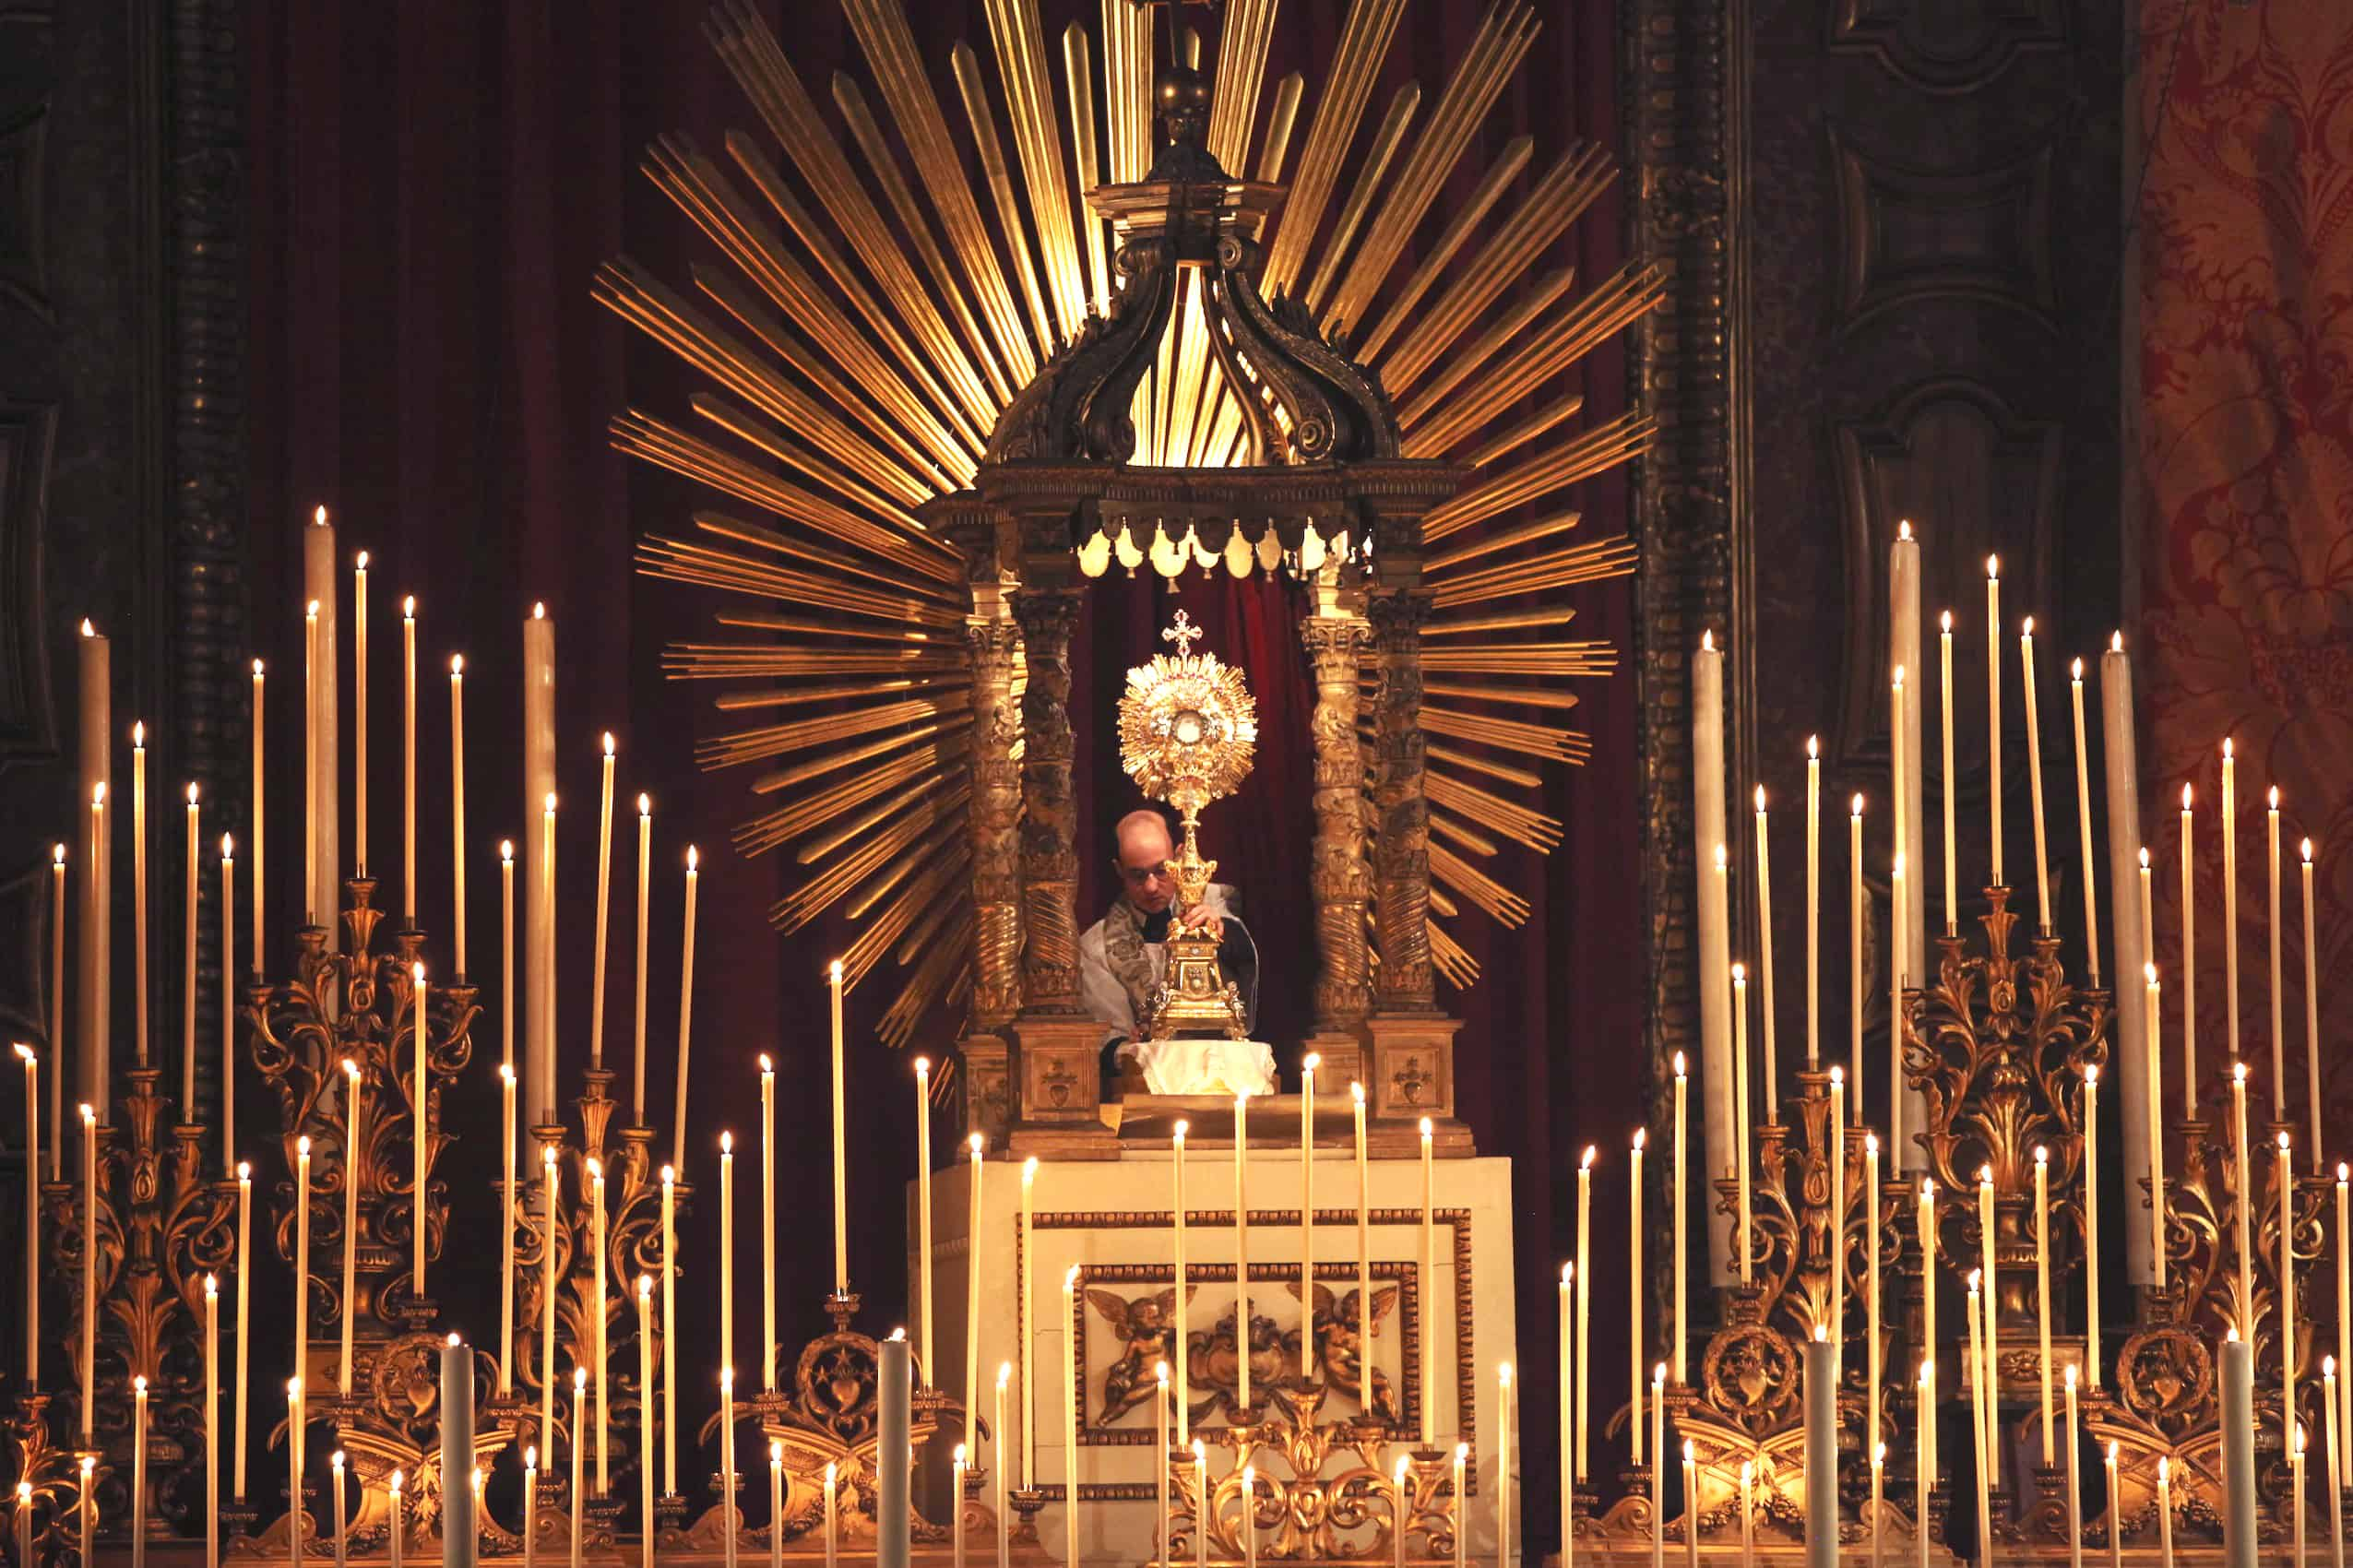 40-hour Adoration to pray for priests is planned for March 12-14